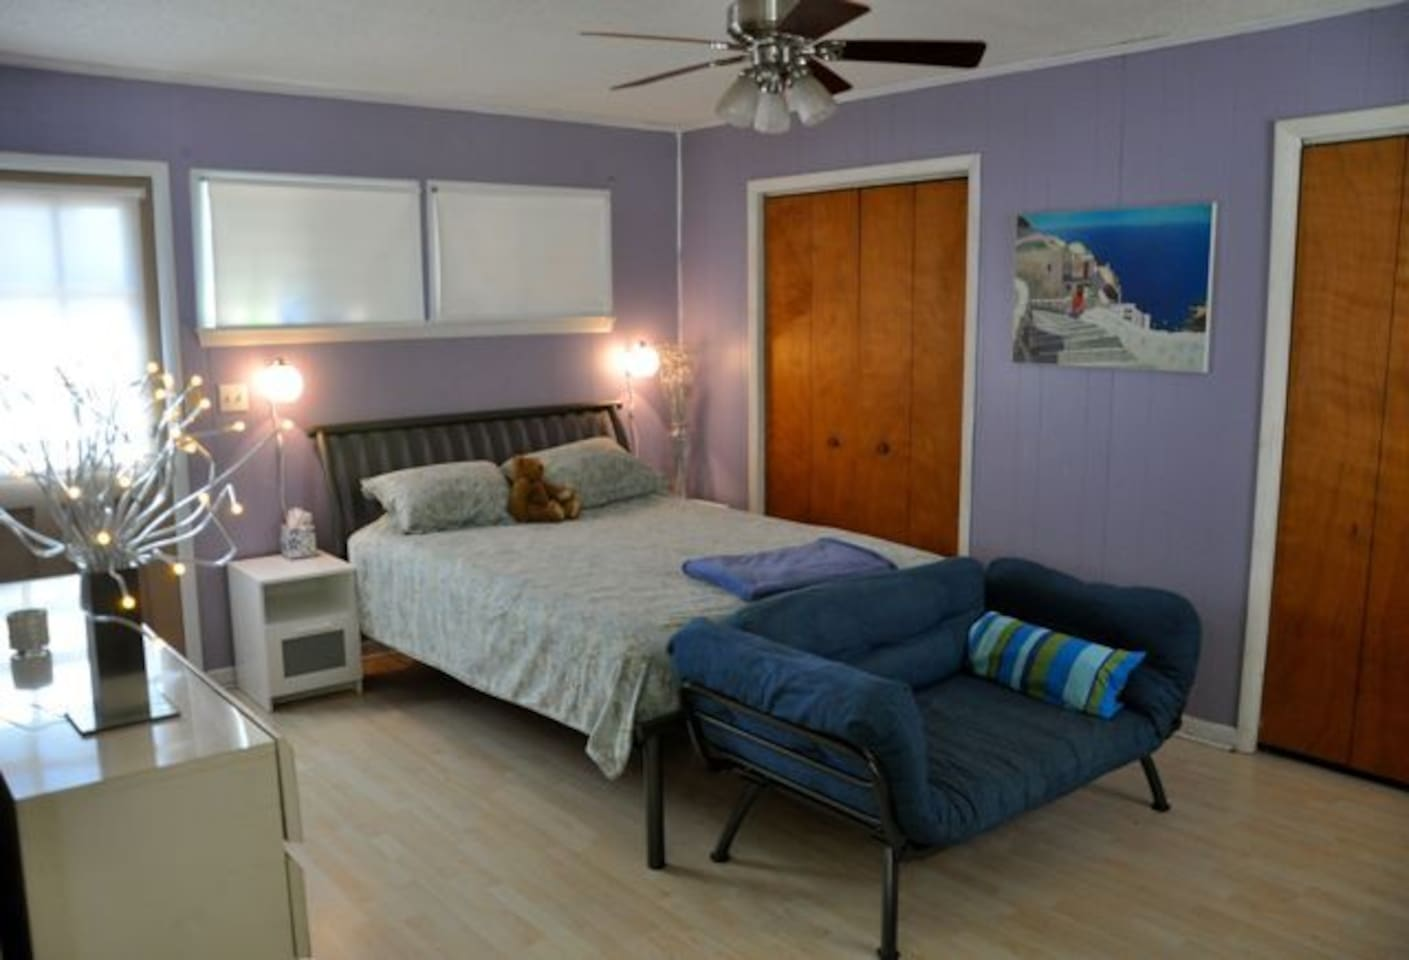 Queen bed, seating ( tv/dvd in front of seating), ceiling fan, ample closet space and cheerful colors